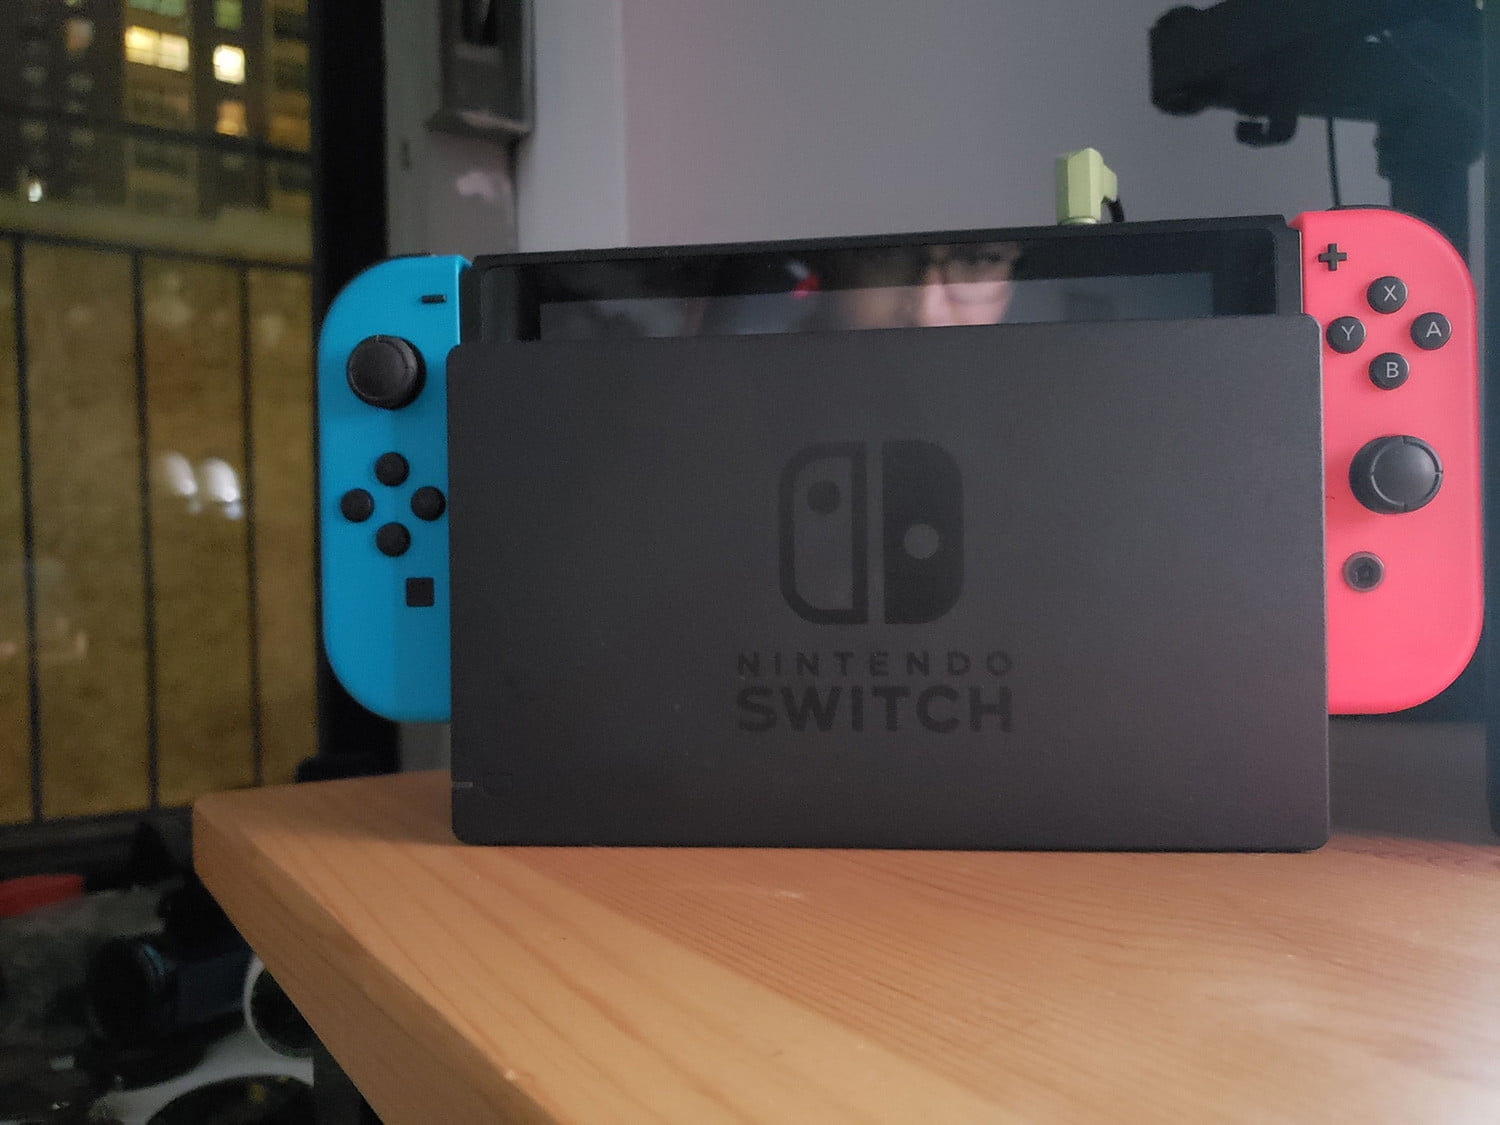 Amazon's latest Nintendo Switch deal snags you the console plus a $30 credit